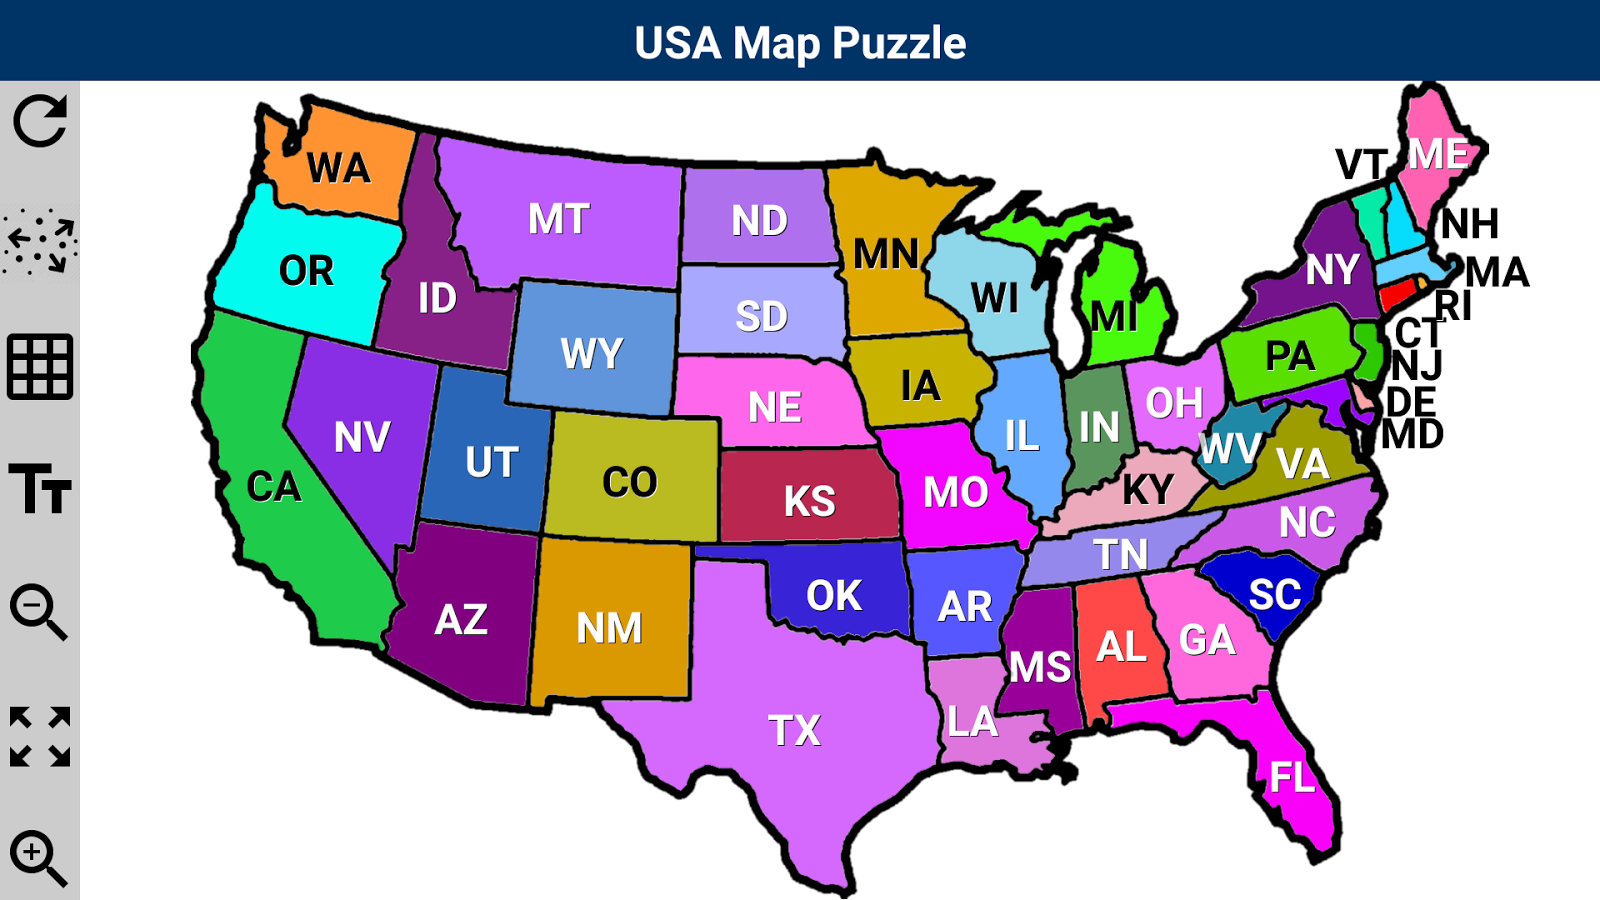 USA Map Puzzle Android Apps On Google Play - A usa map